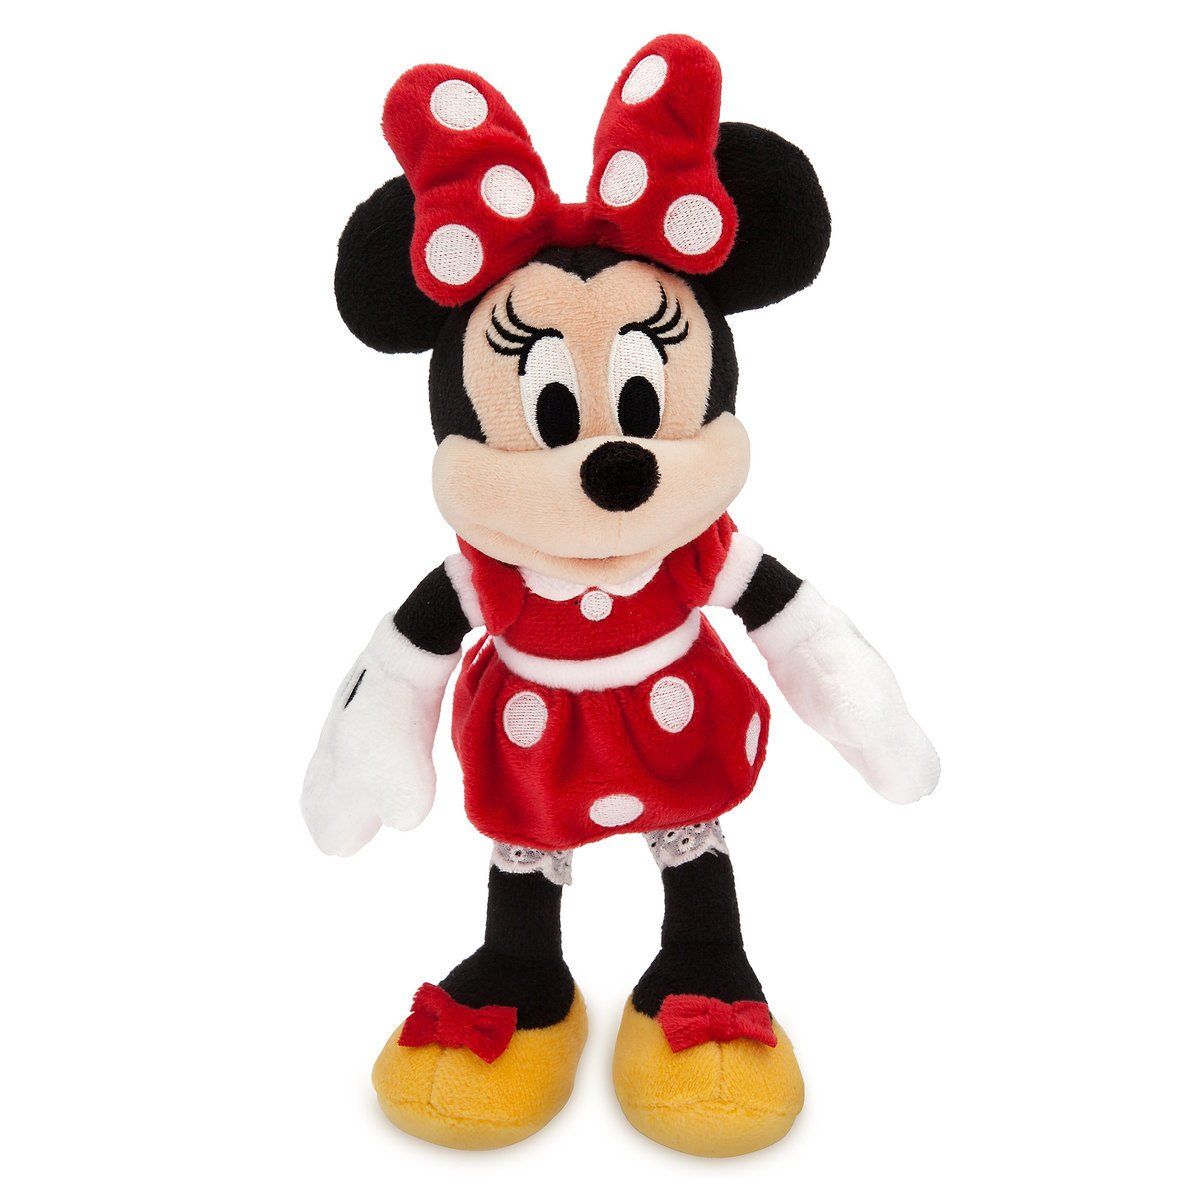 Disney Store Minnie Mouse Plush Red Mini Bean Bag 9 1/2inc New with Tags